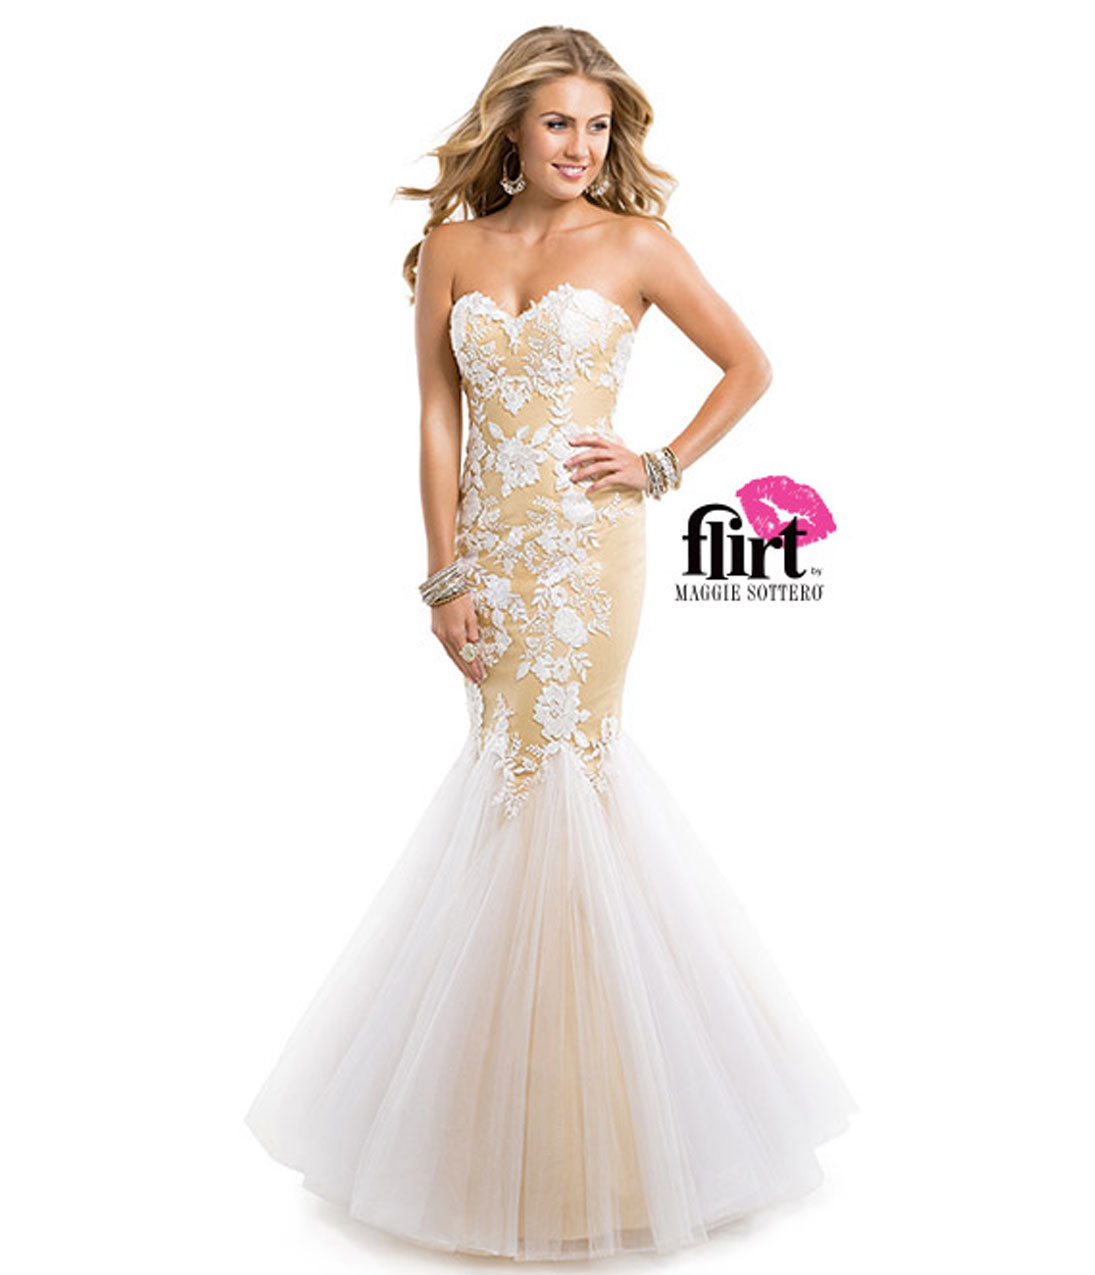 Flirt by Maggie Sottero 2014 Prom Dresses - White & Gold Lace & Tulle Mermaid Prom Gown - Unique Vintage - Prom dresses, retro dresses, retro swimsuits.